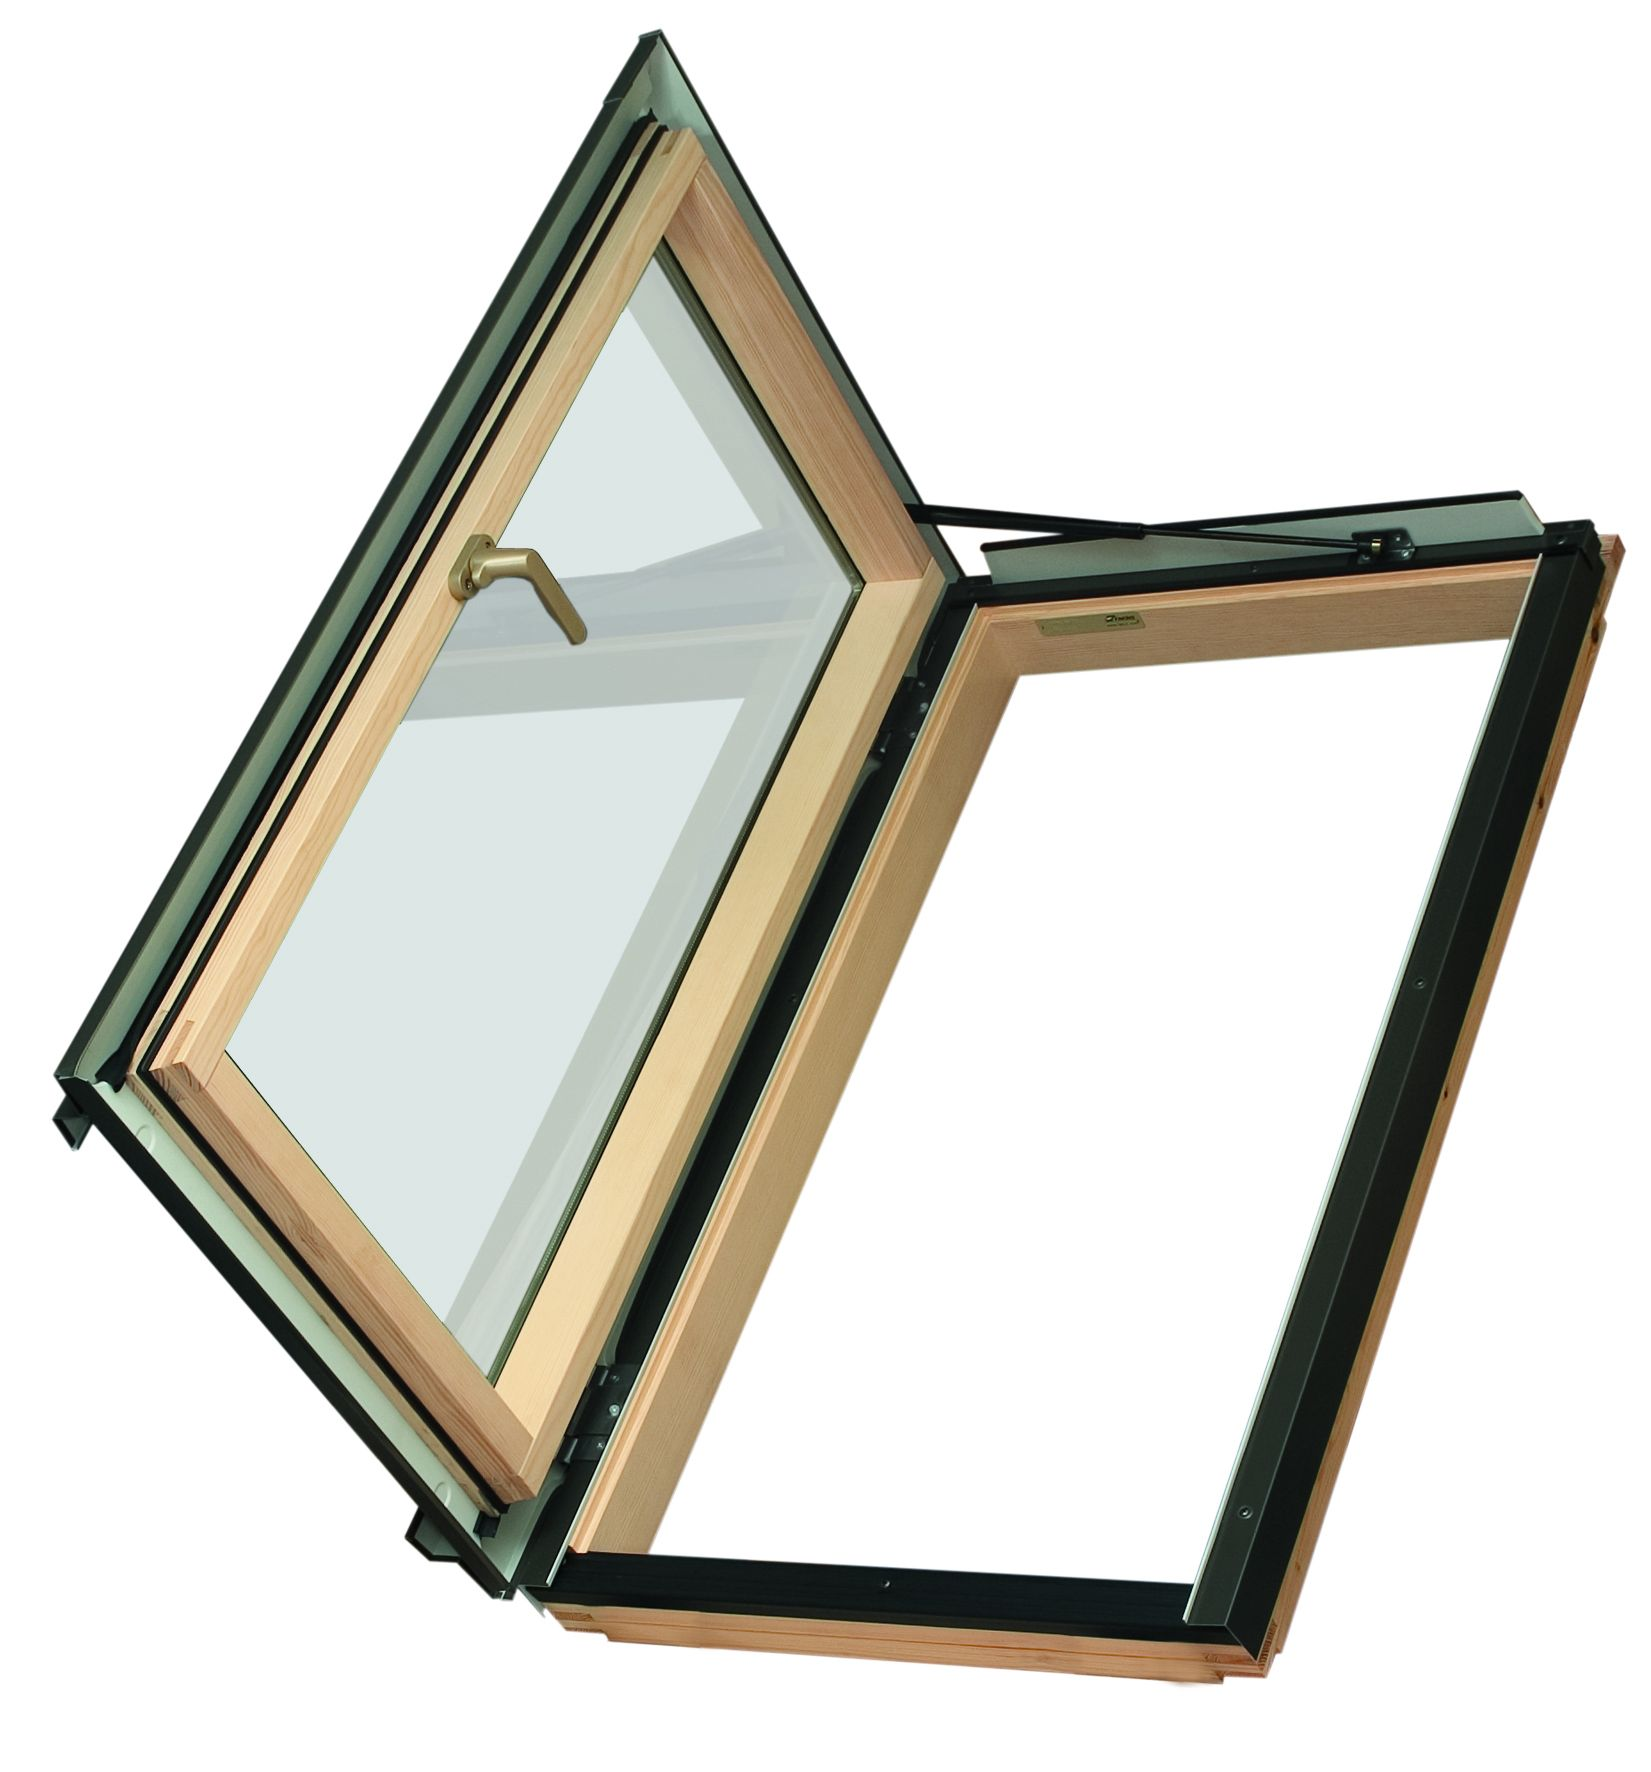 FAKRO FWU-L-69158 Side Hung Roof Access Window  24x46